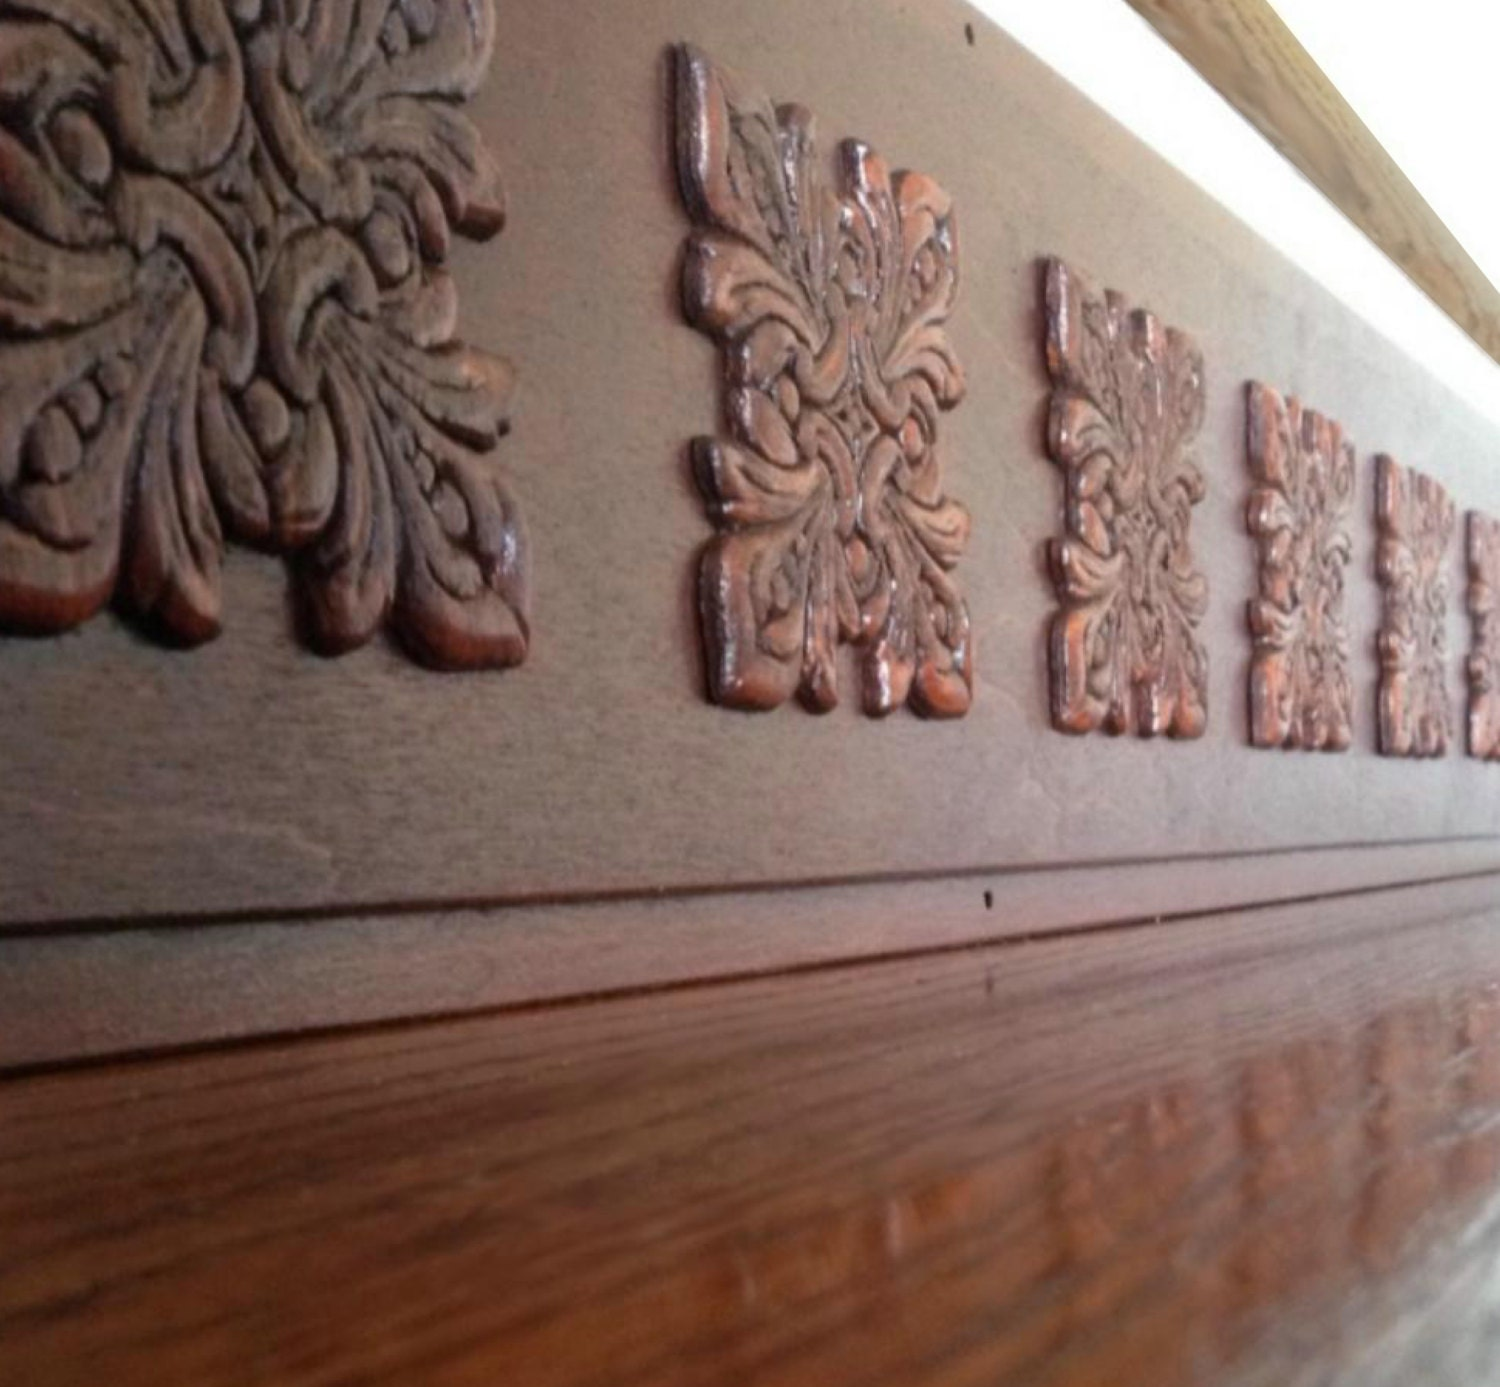 Carved Wood Stair Risers Stair Ideas Stamped Leather: Faux Carved Wood Look / Alternative To Vinyl Stair Decals